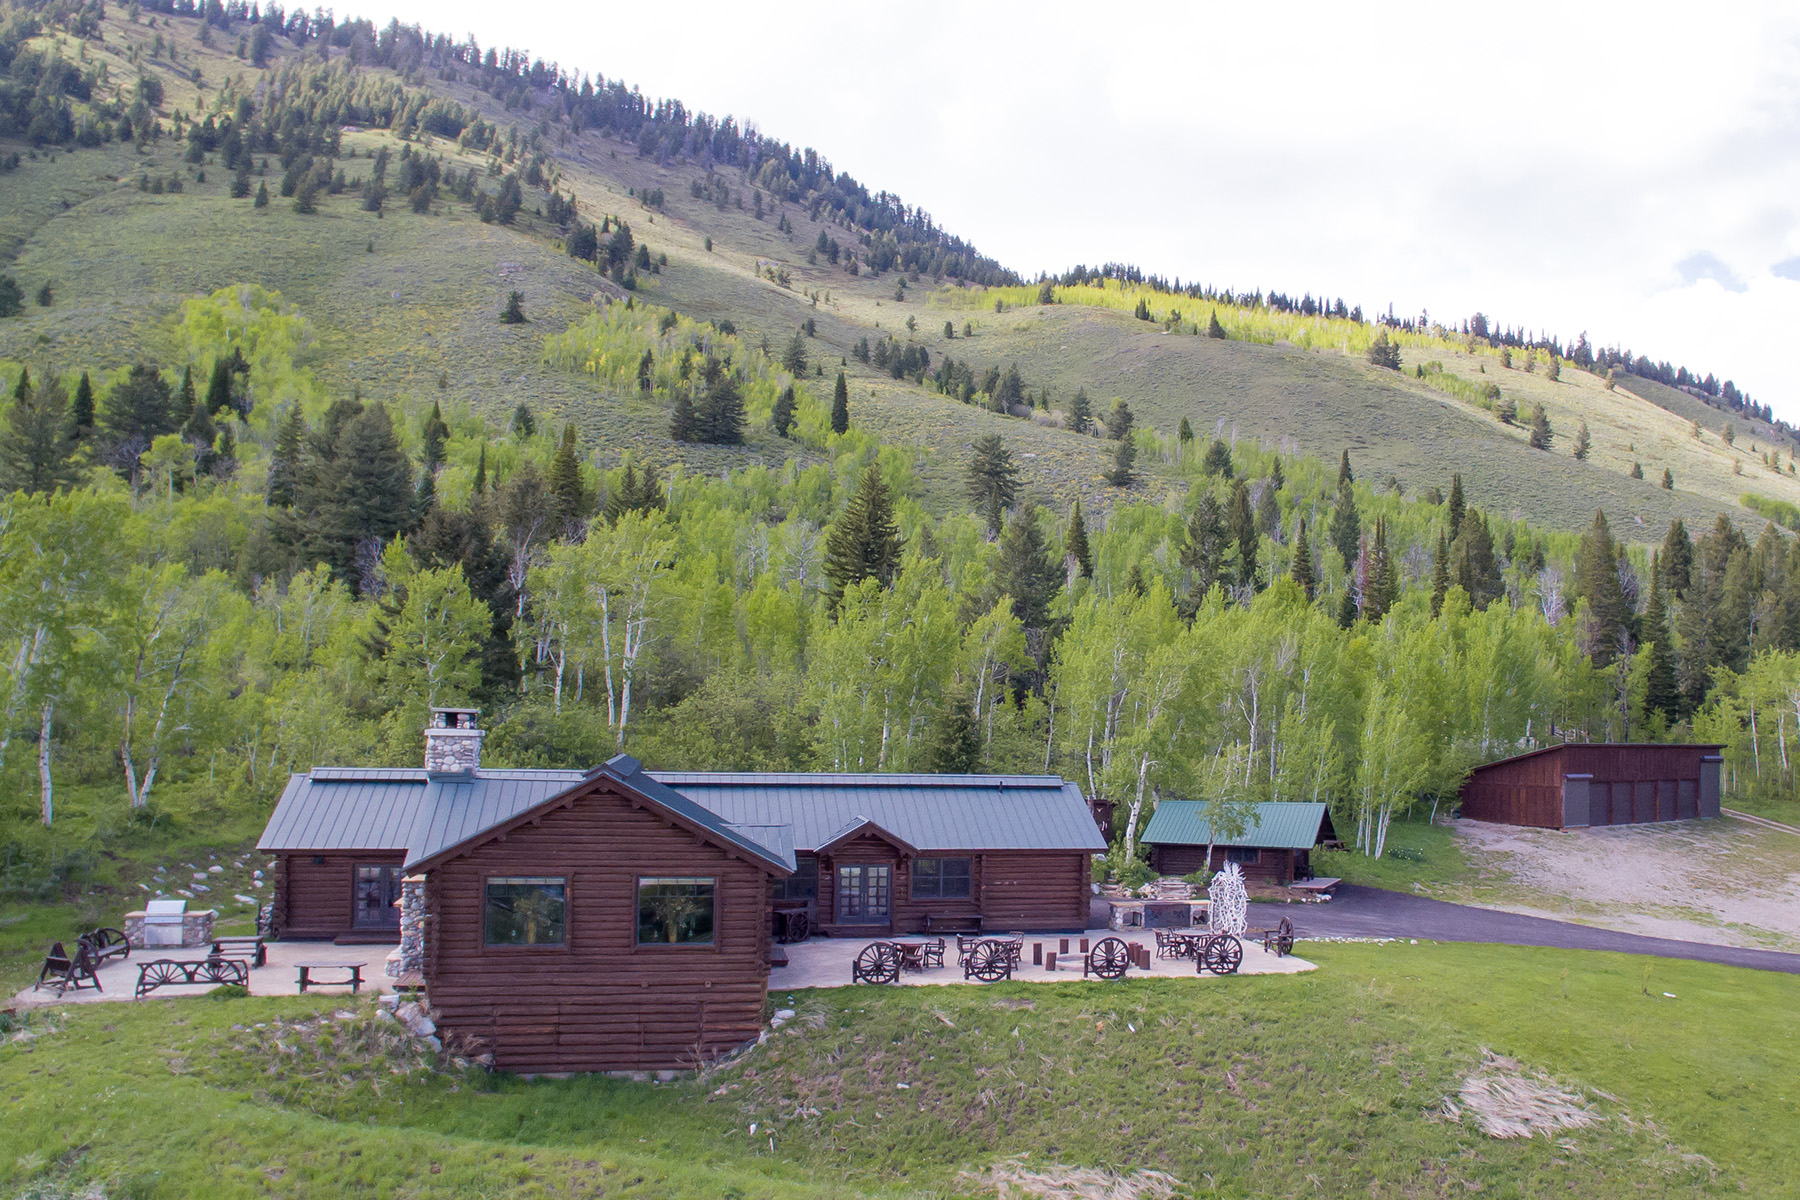 独户住宅 为 销售 在 Historic Lazy Moose Ranch - Upper Ranch 2485 N Fish Creek Road, 威尔逊, 怀俄明州, 83014 Jackson Hole, 美国